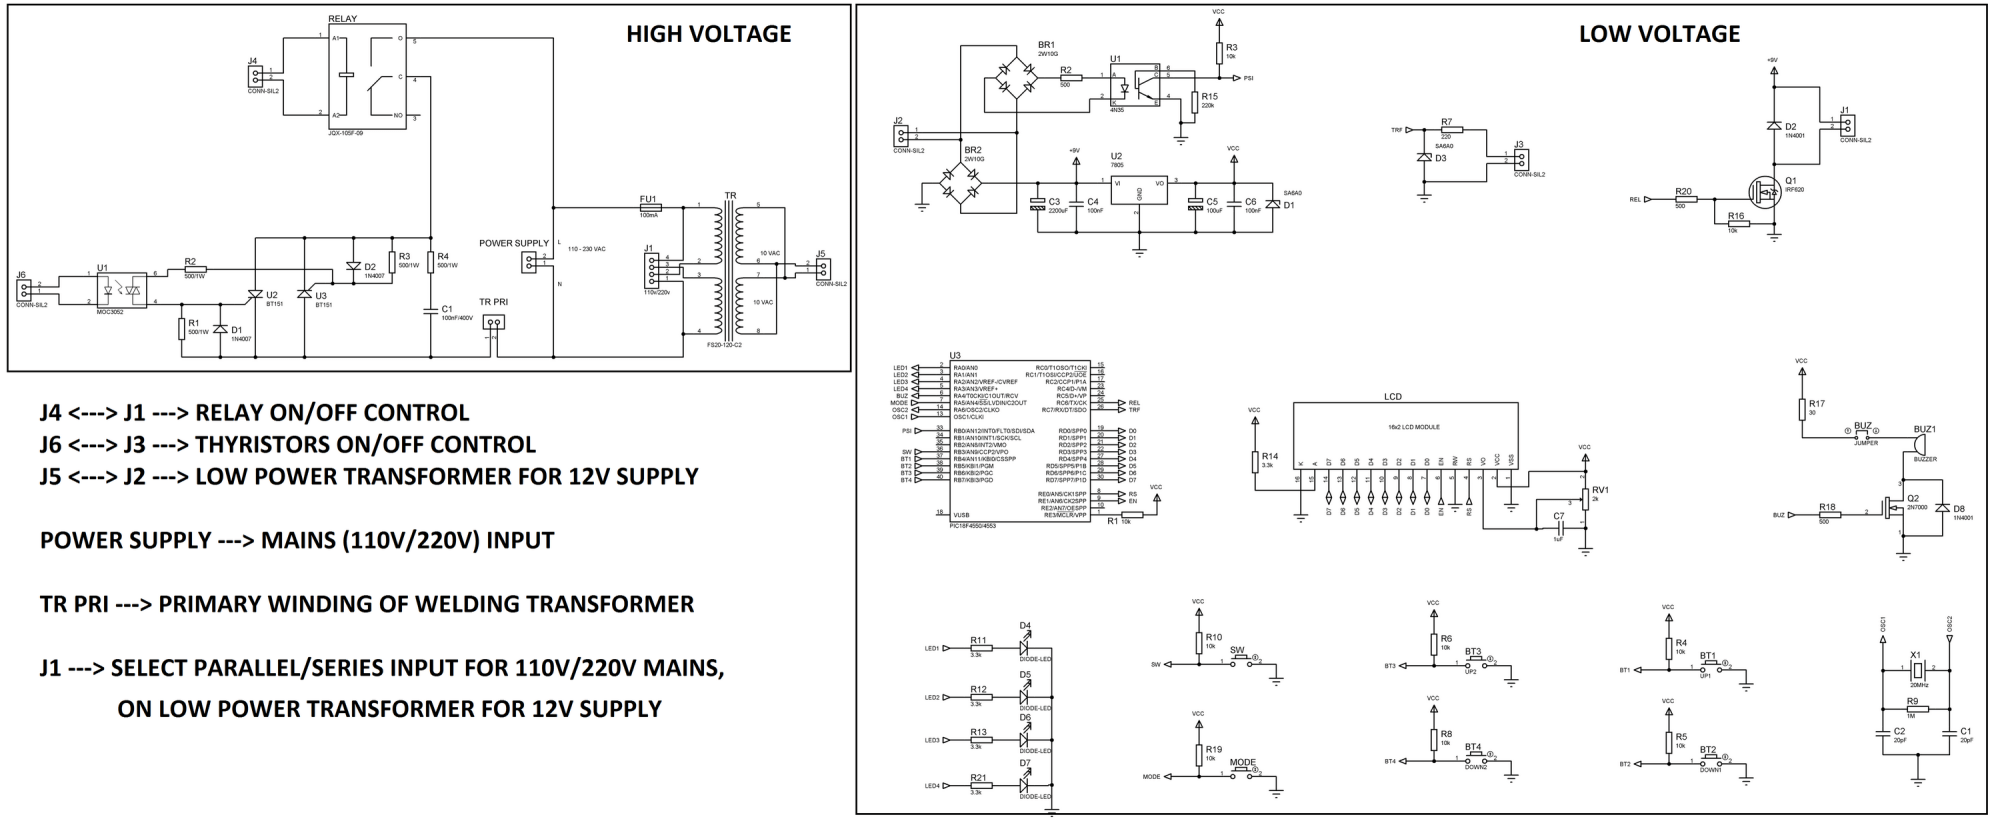 hight resolution of same schematic another view